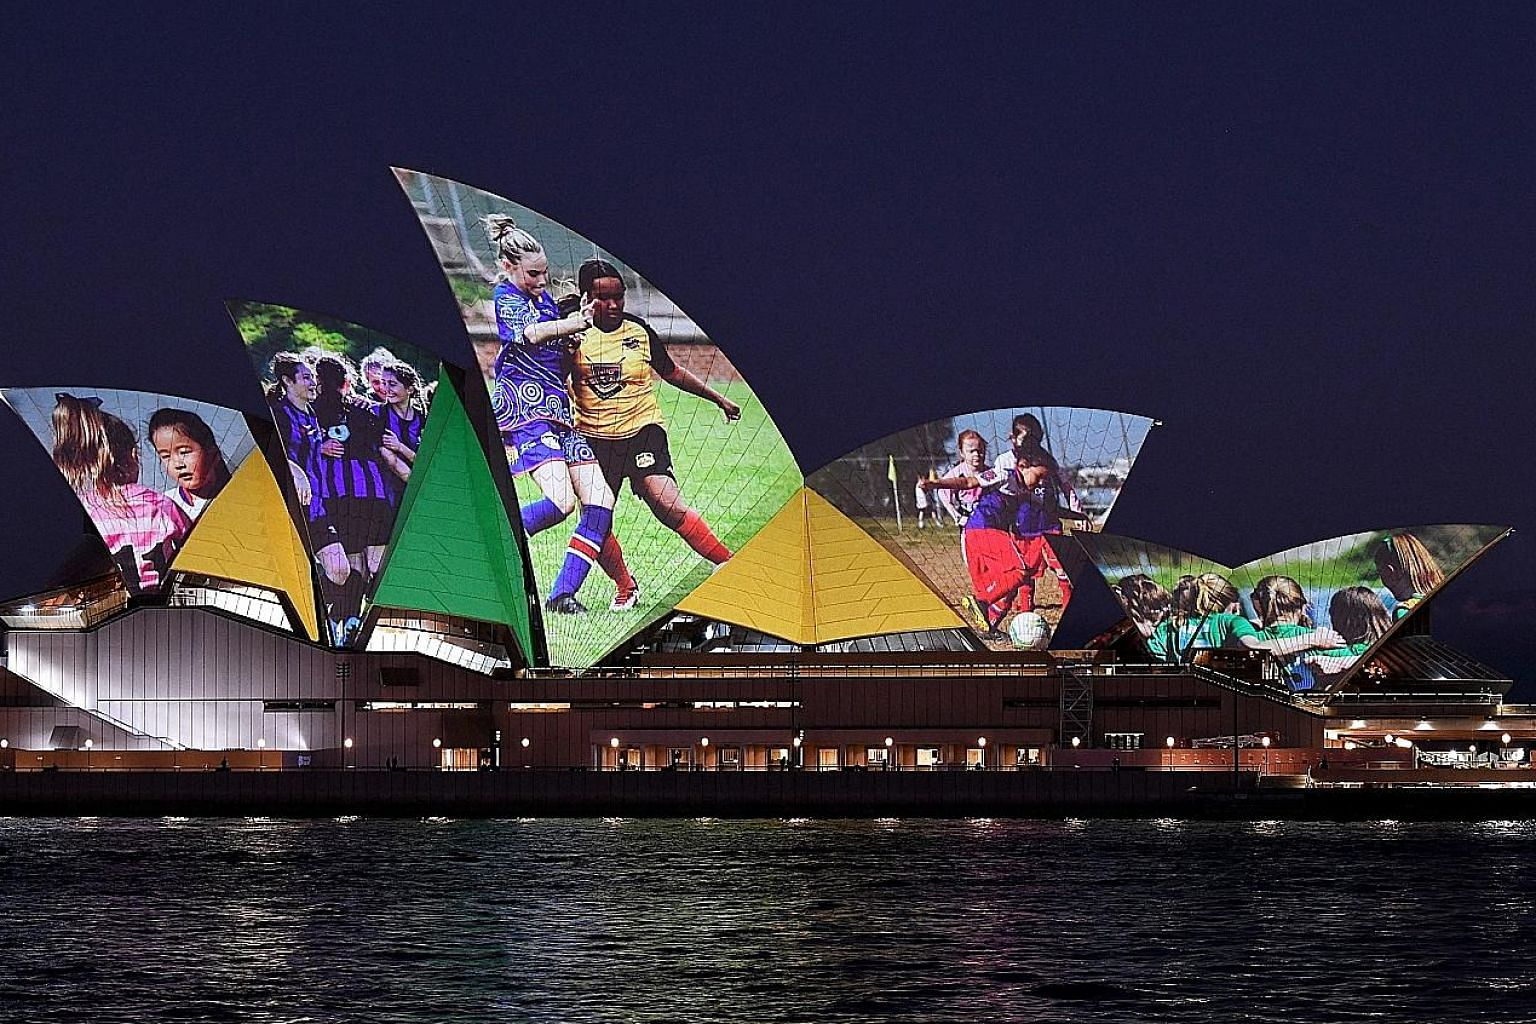 The Sydney Opera House illuminated on Thursday in support of Australia and New Zealand's joint bid to host the Fifa Women's World Cup. Both countries' federations say the 2023 tournament will develop women's football further in Asia and Oceania. The